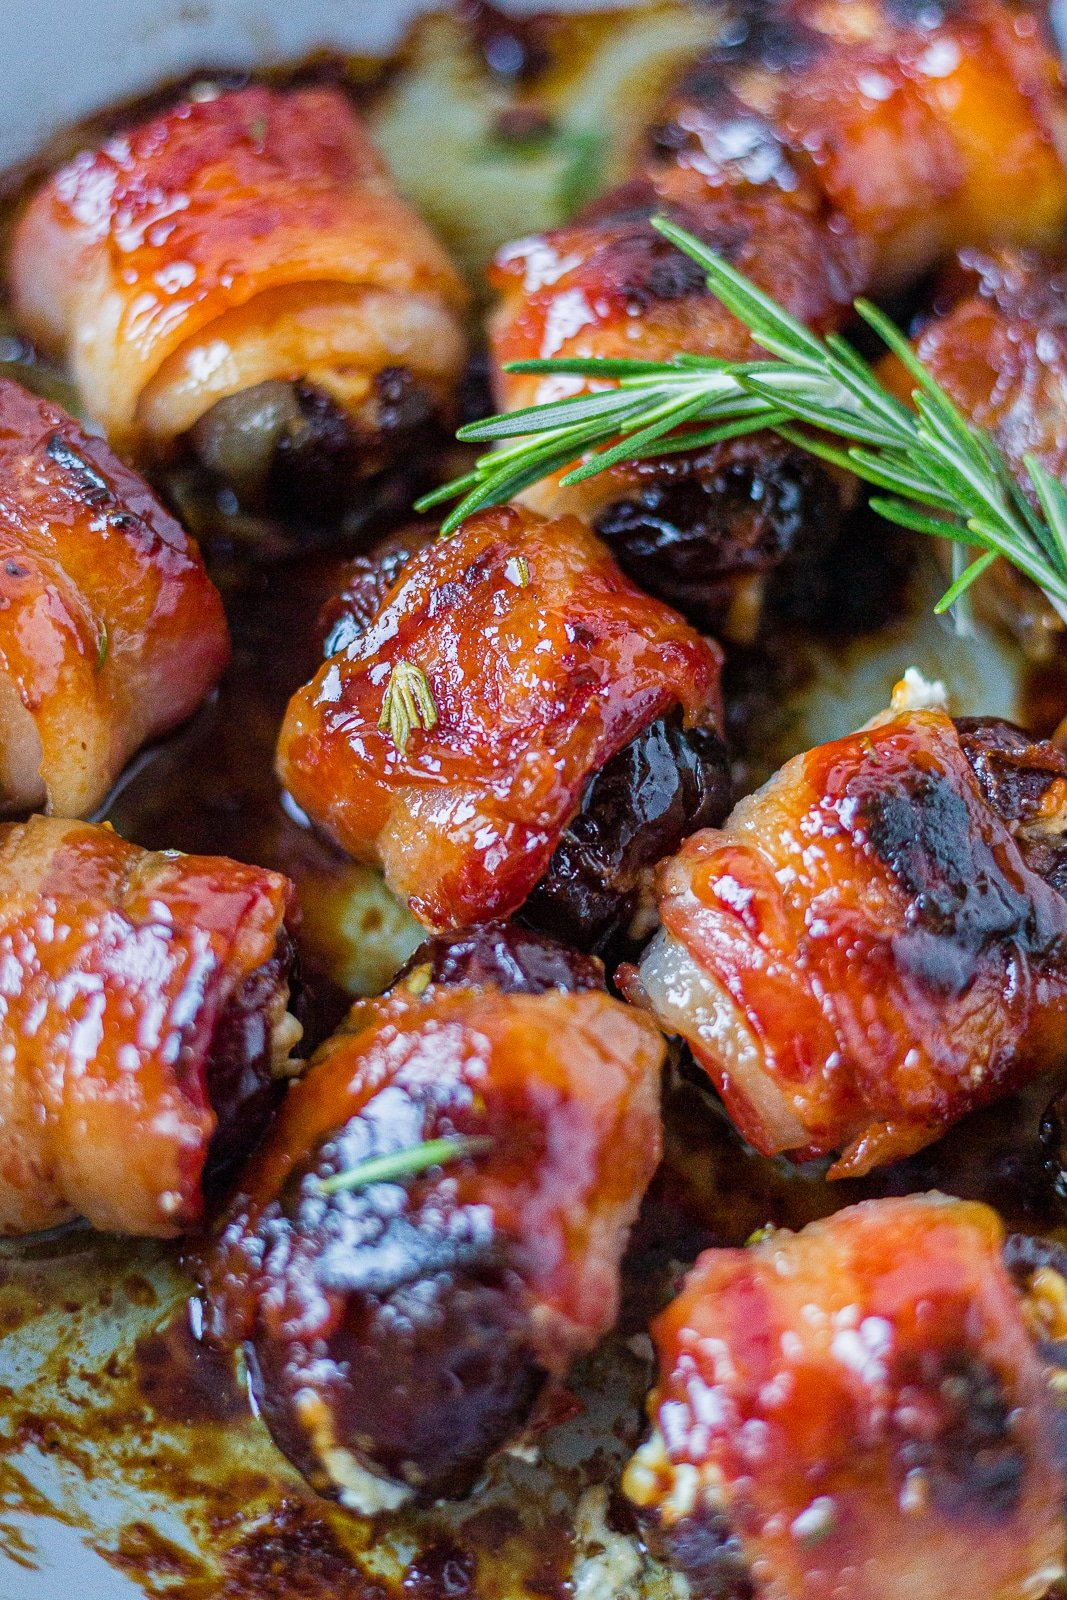 bacon wrapped dates cooked crispy on a pan with a sprig of fresh rosemary